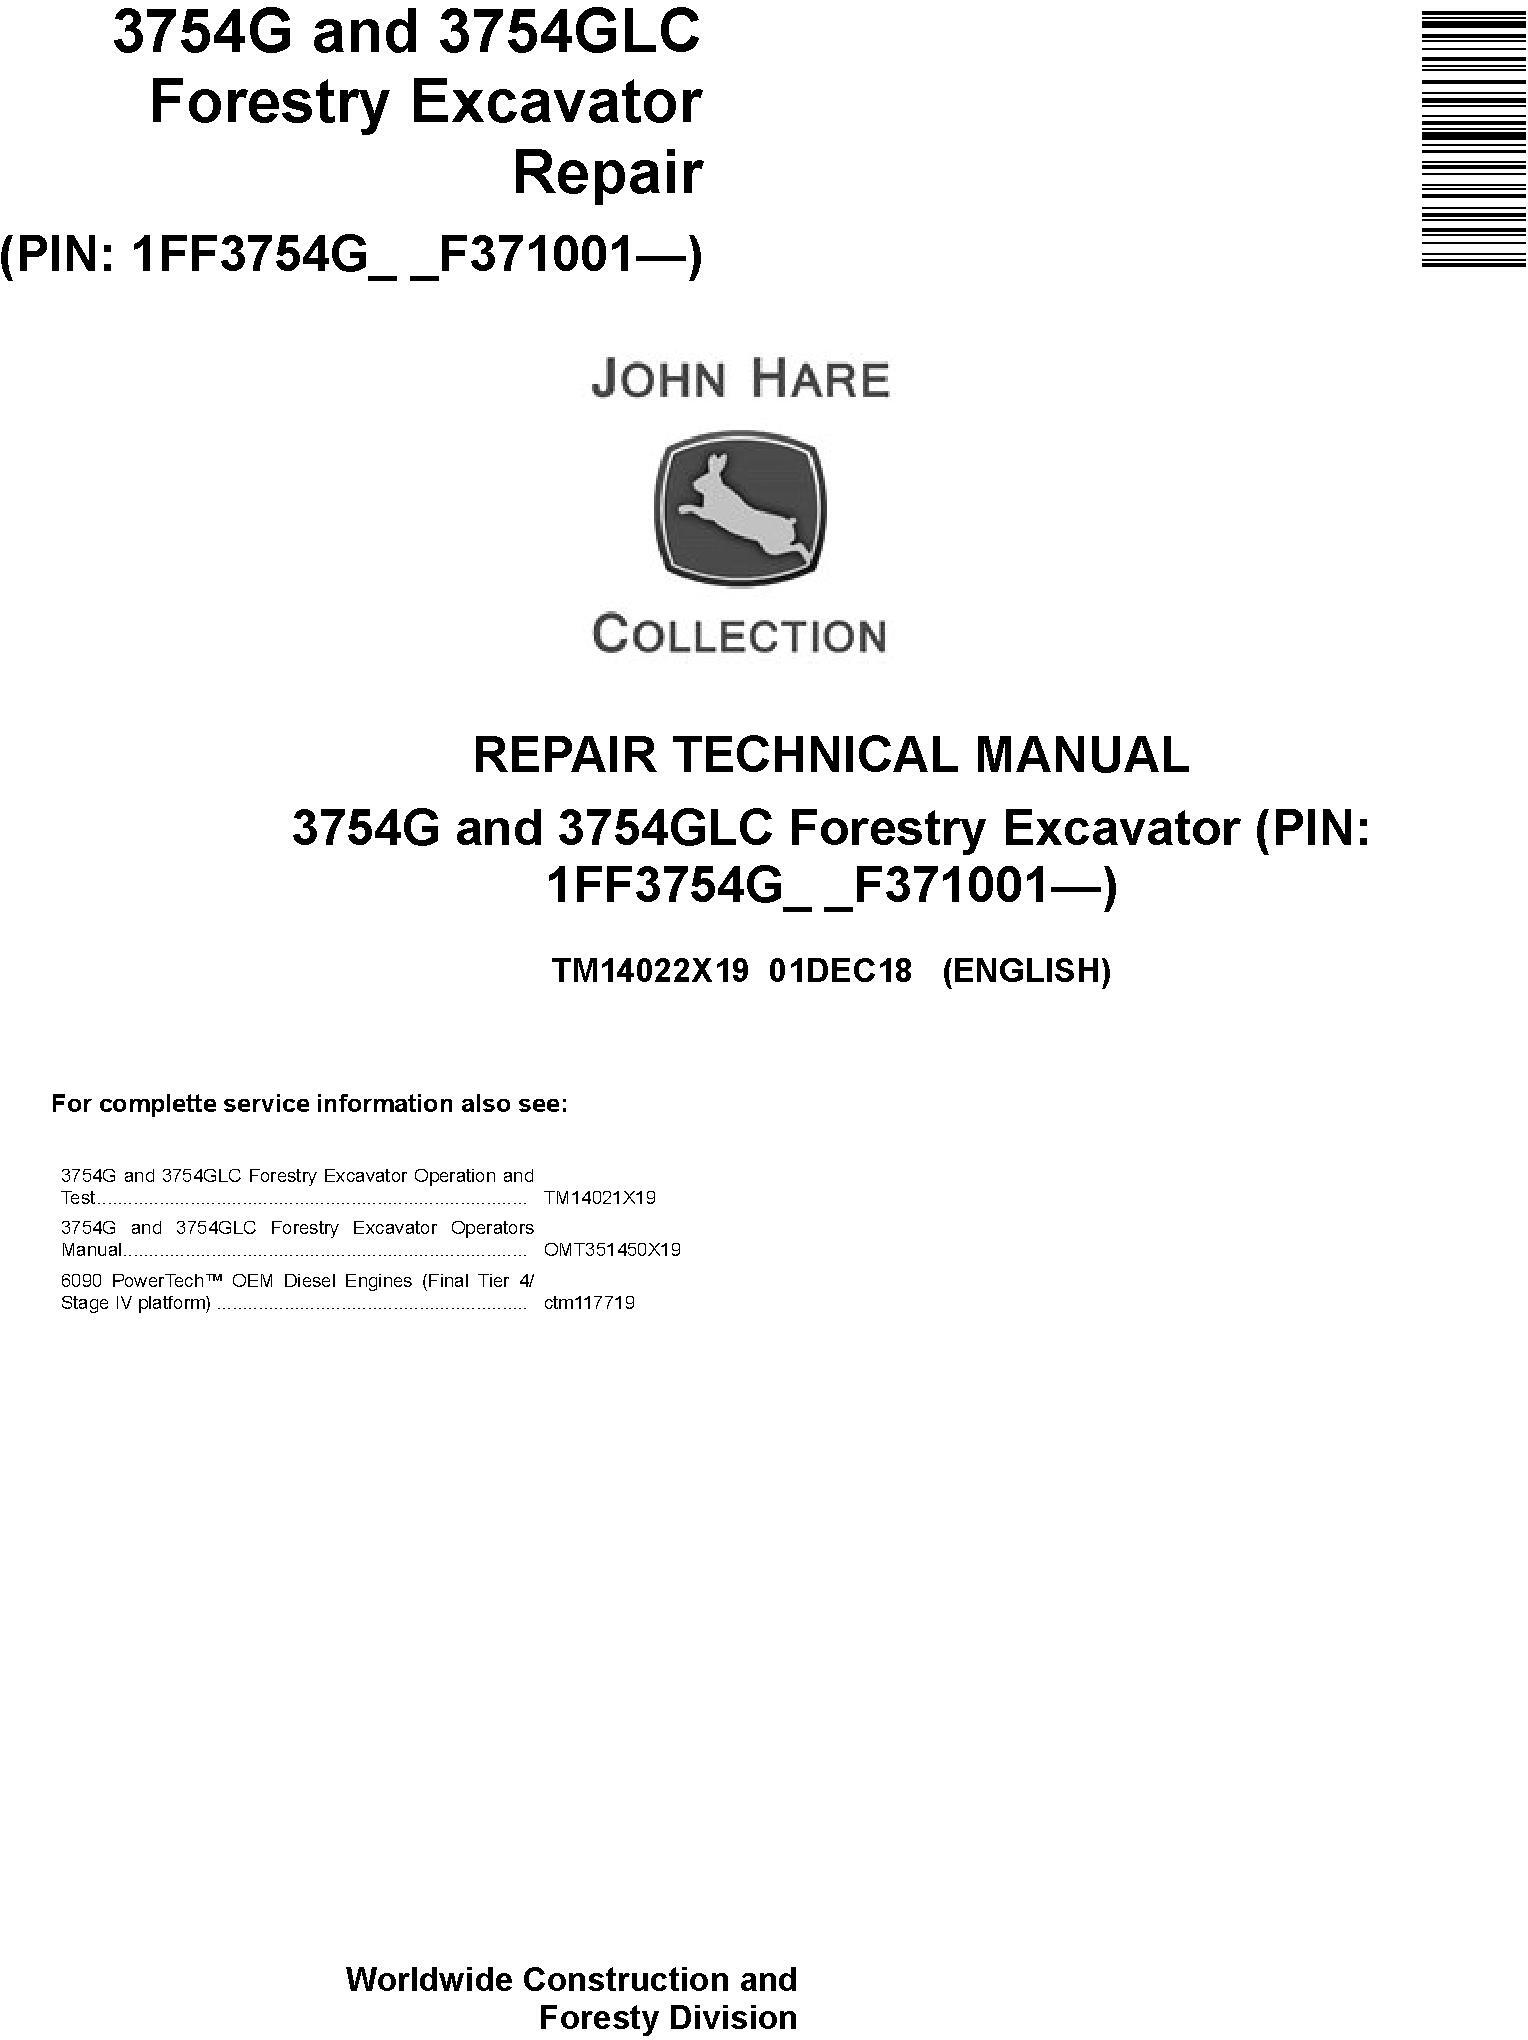 John Deere 3754G and 3754GLC (SN. F371001-) Forestry Excavator Repair Technical Manual (TM14022X19) - 19191